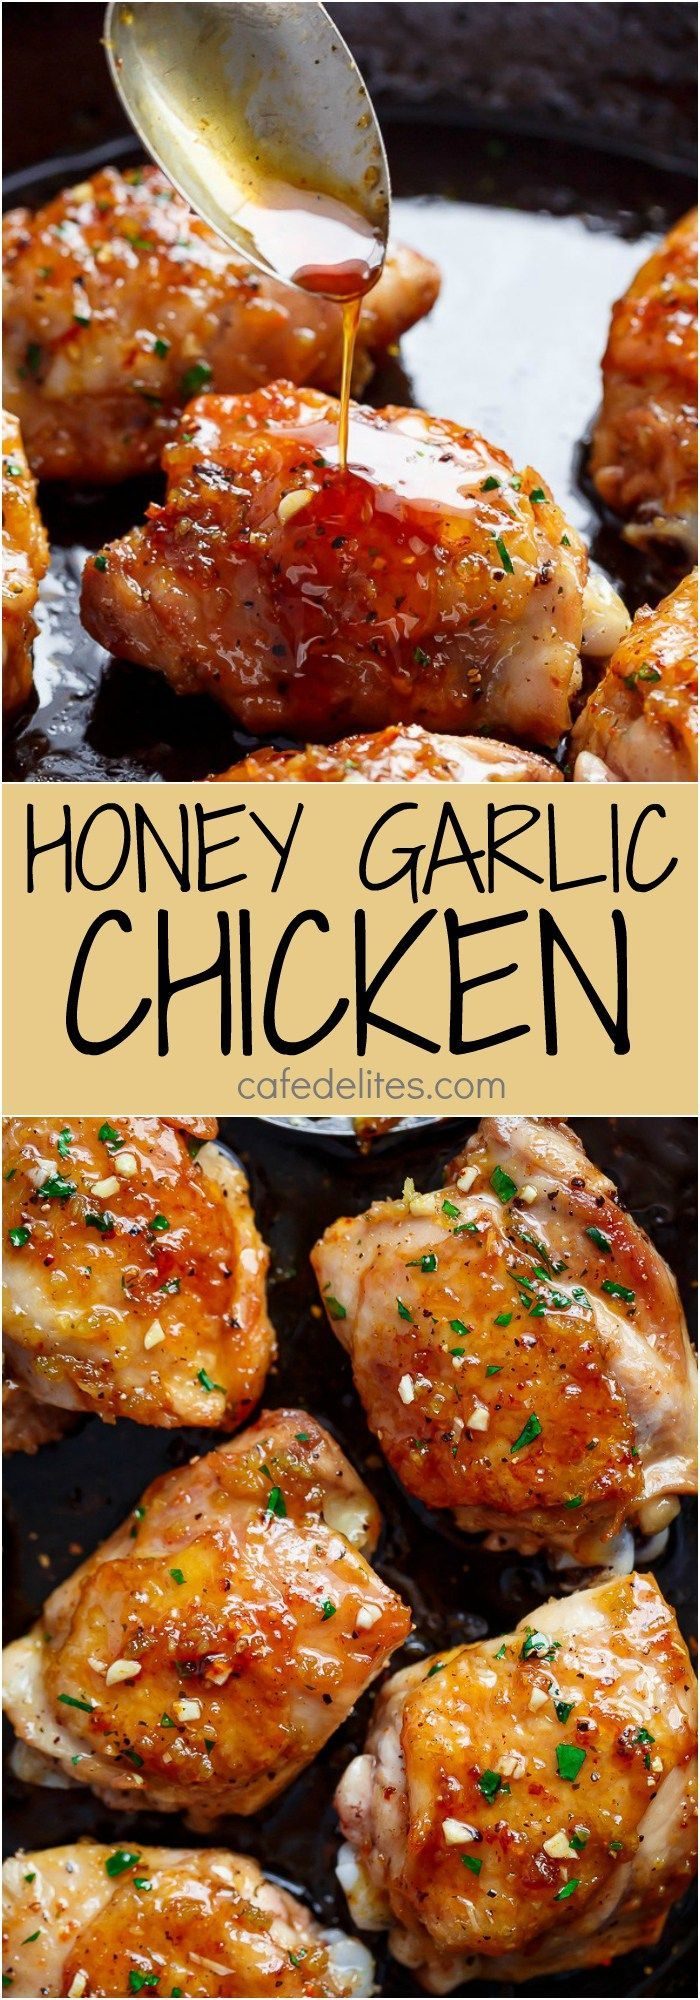 Quick and easy sauce recipes for chicken